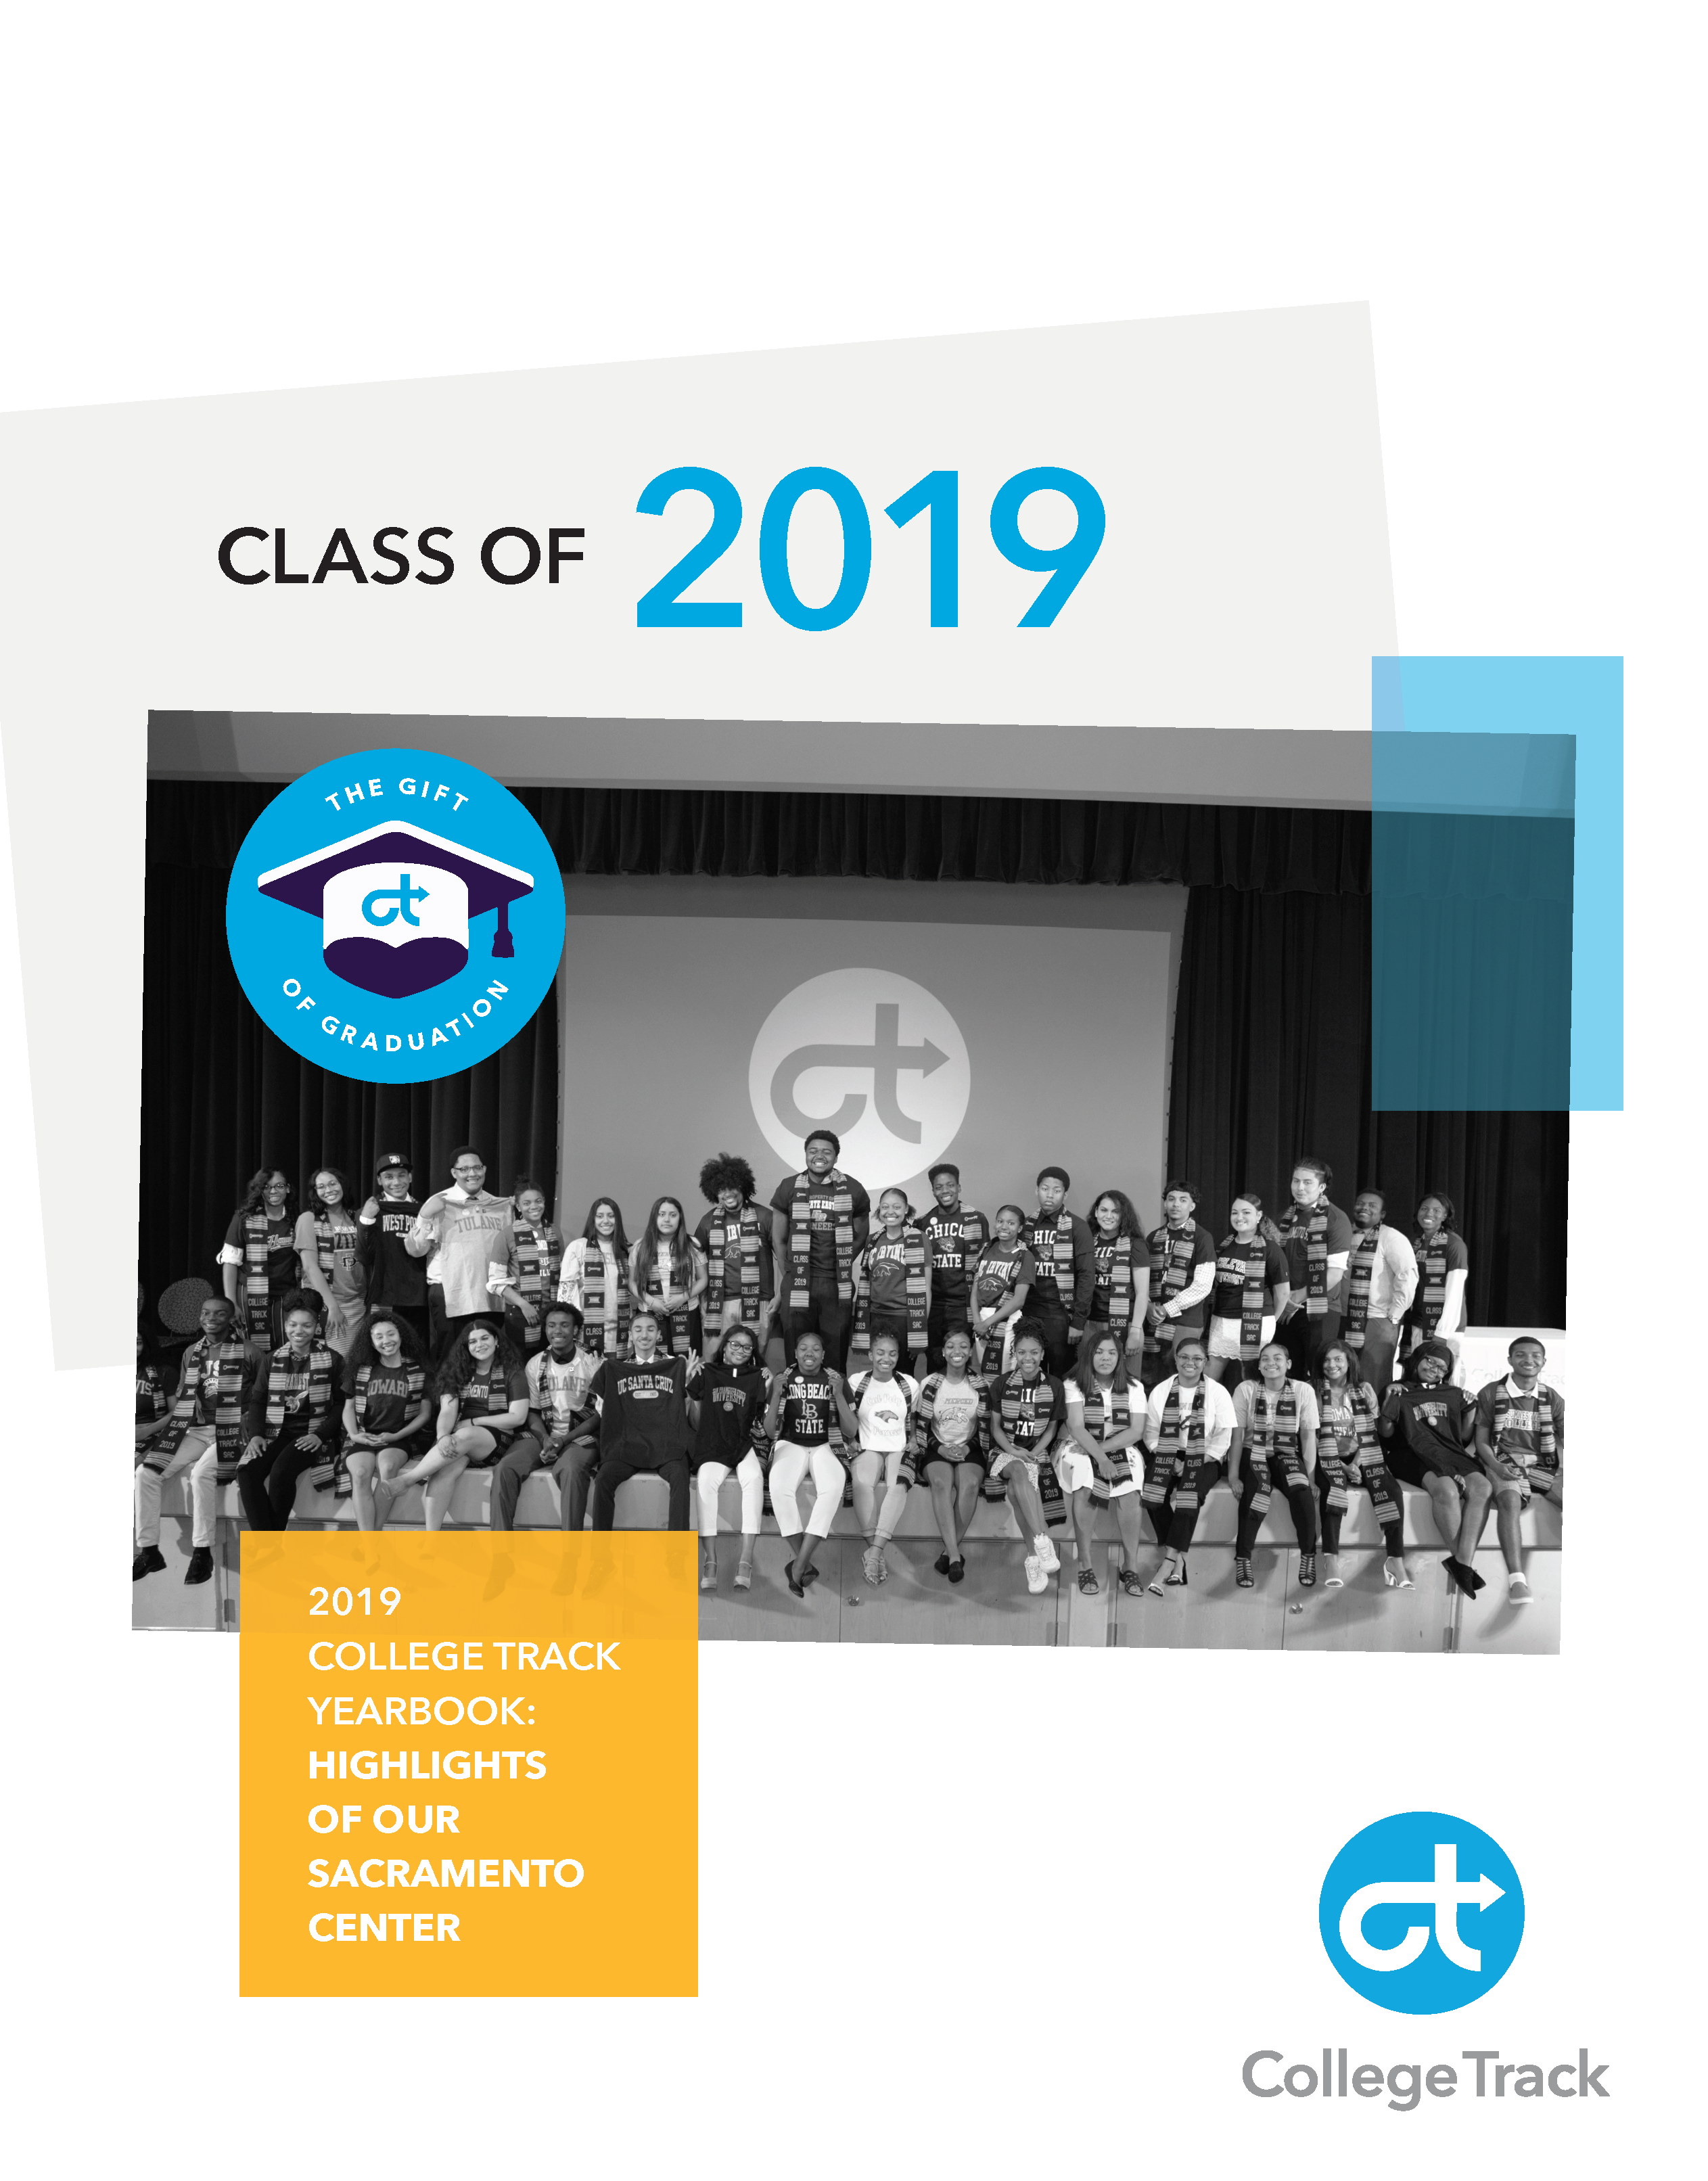 Gift of Graduation yearbook cover options